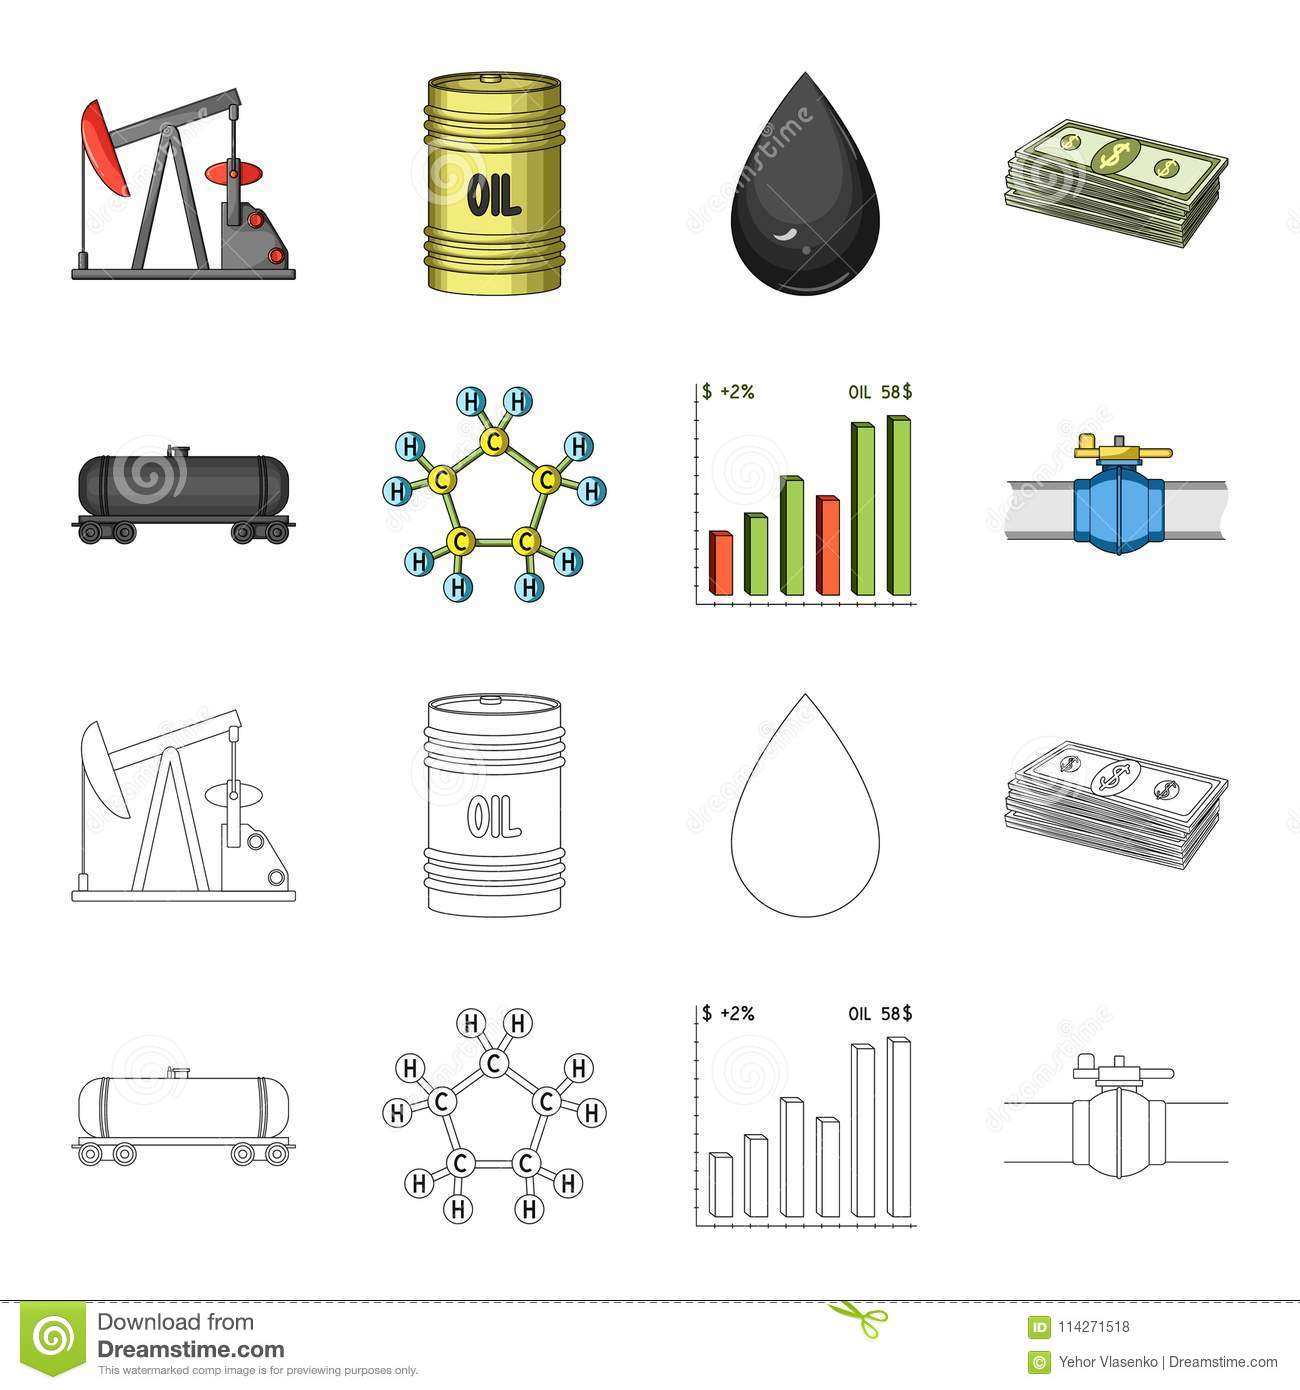 Railway tank, chemical formula, oil price chart, pipeline valve. Oil set collection icons in cartoon,outline style